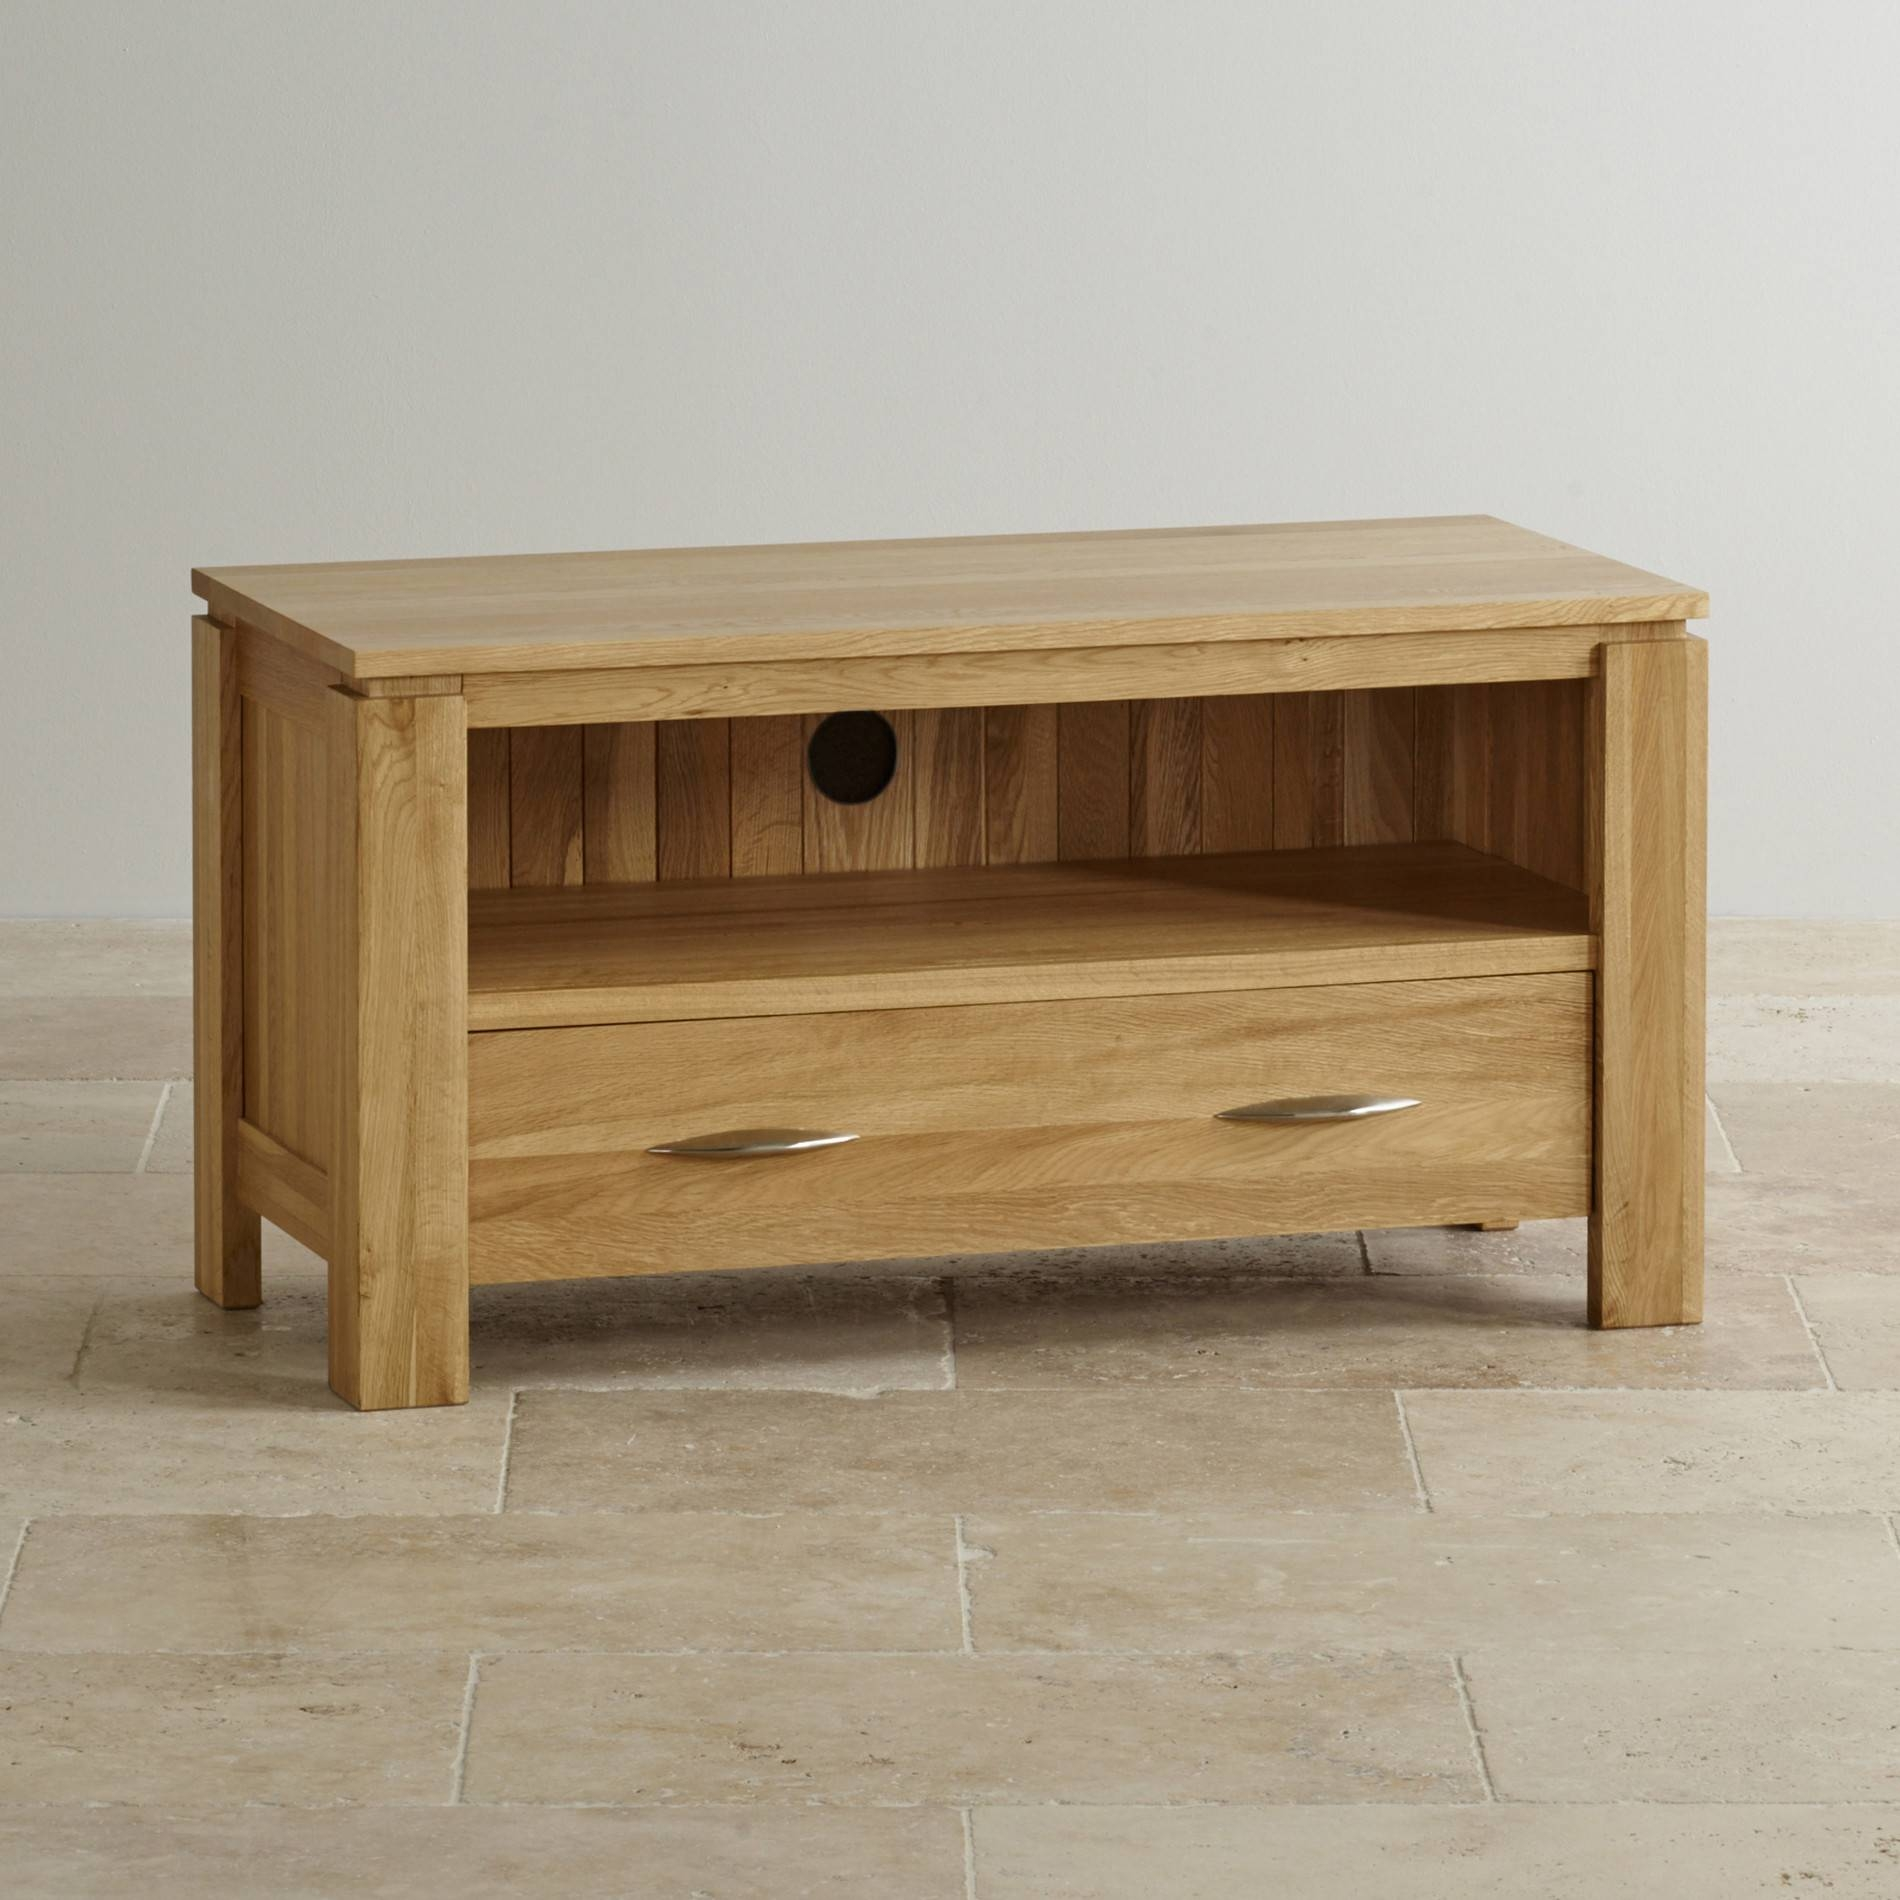 Galway Natural Solid Oak Tv + Dvd Stand | Living Room Furniture inside Oak Tv Cabinets With Doors (Image 5 of 15)